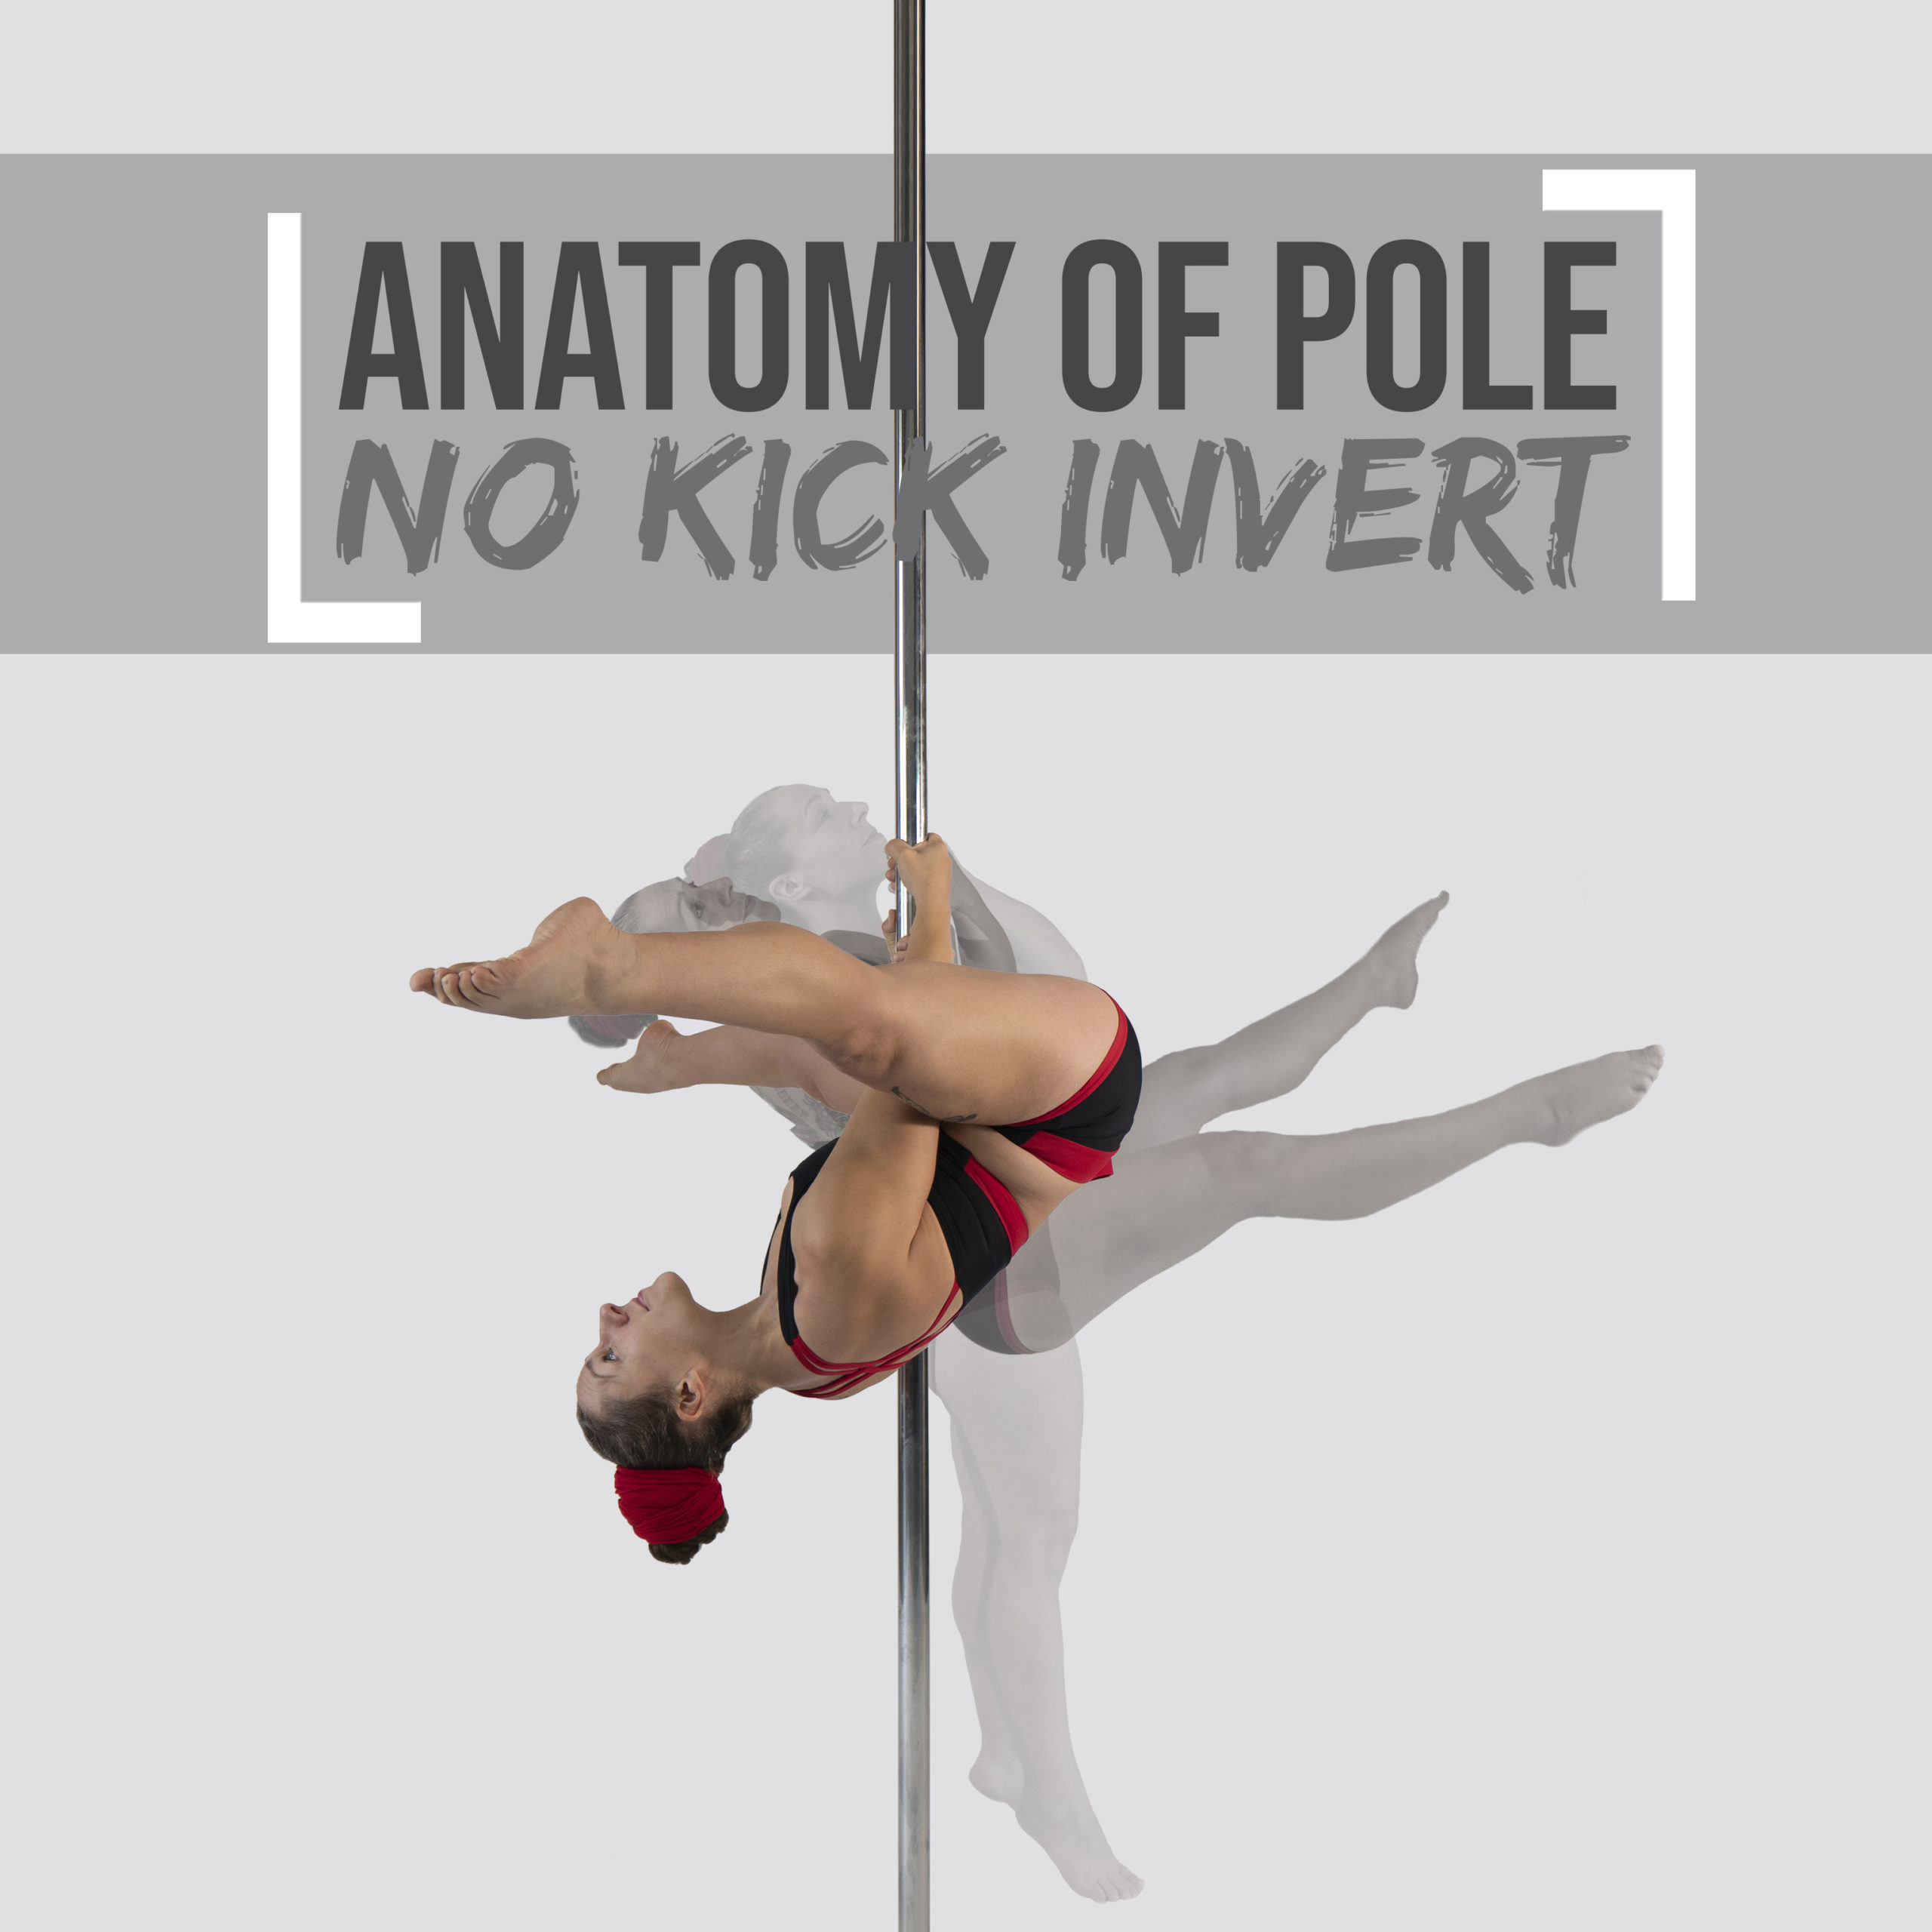 Anatomy of the Pole Invert